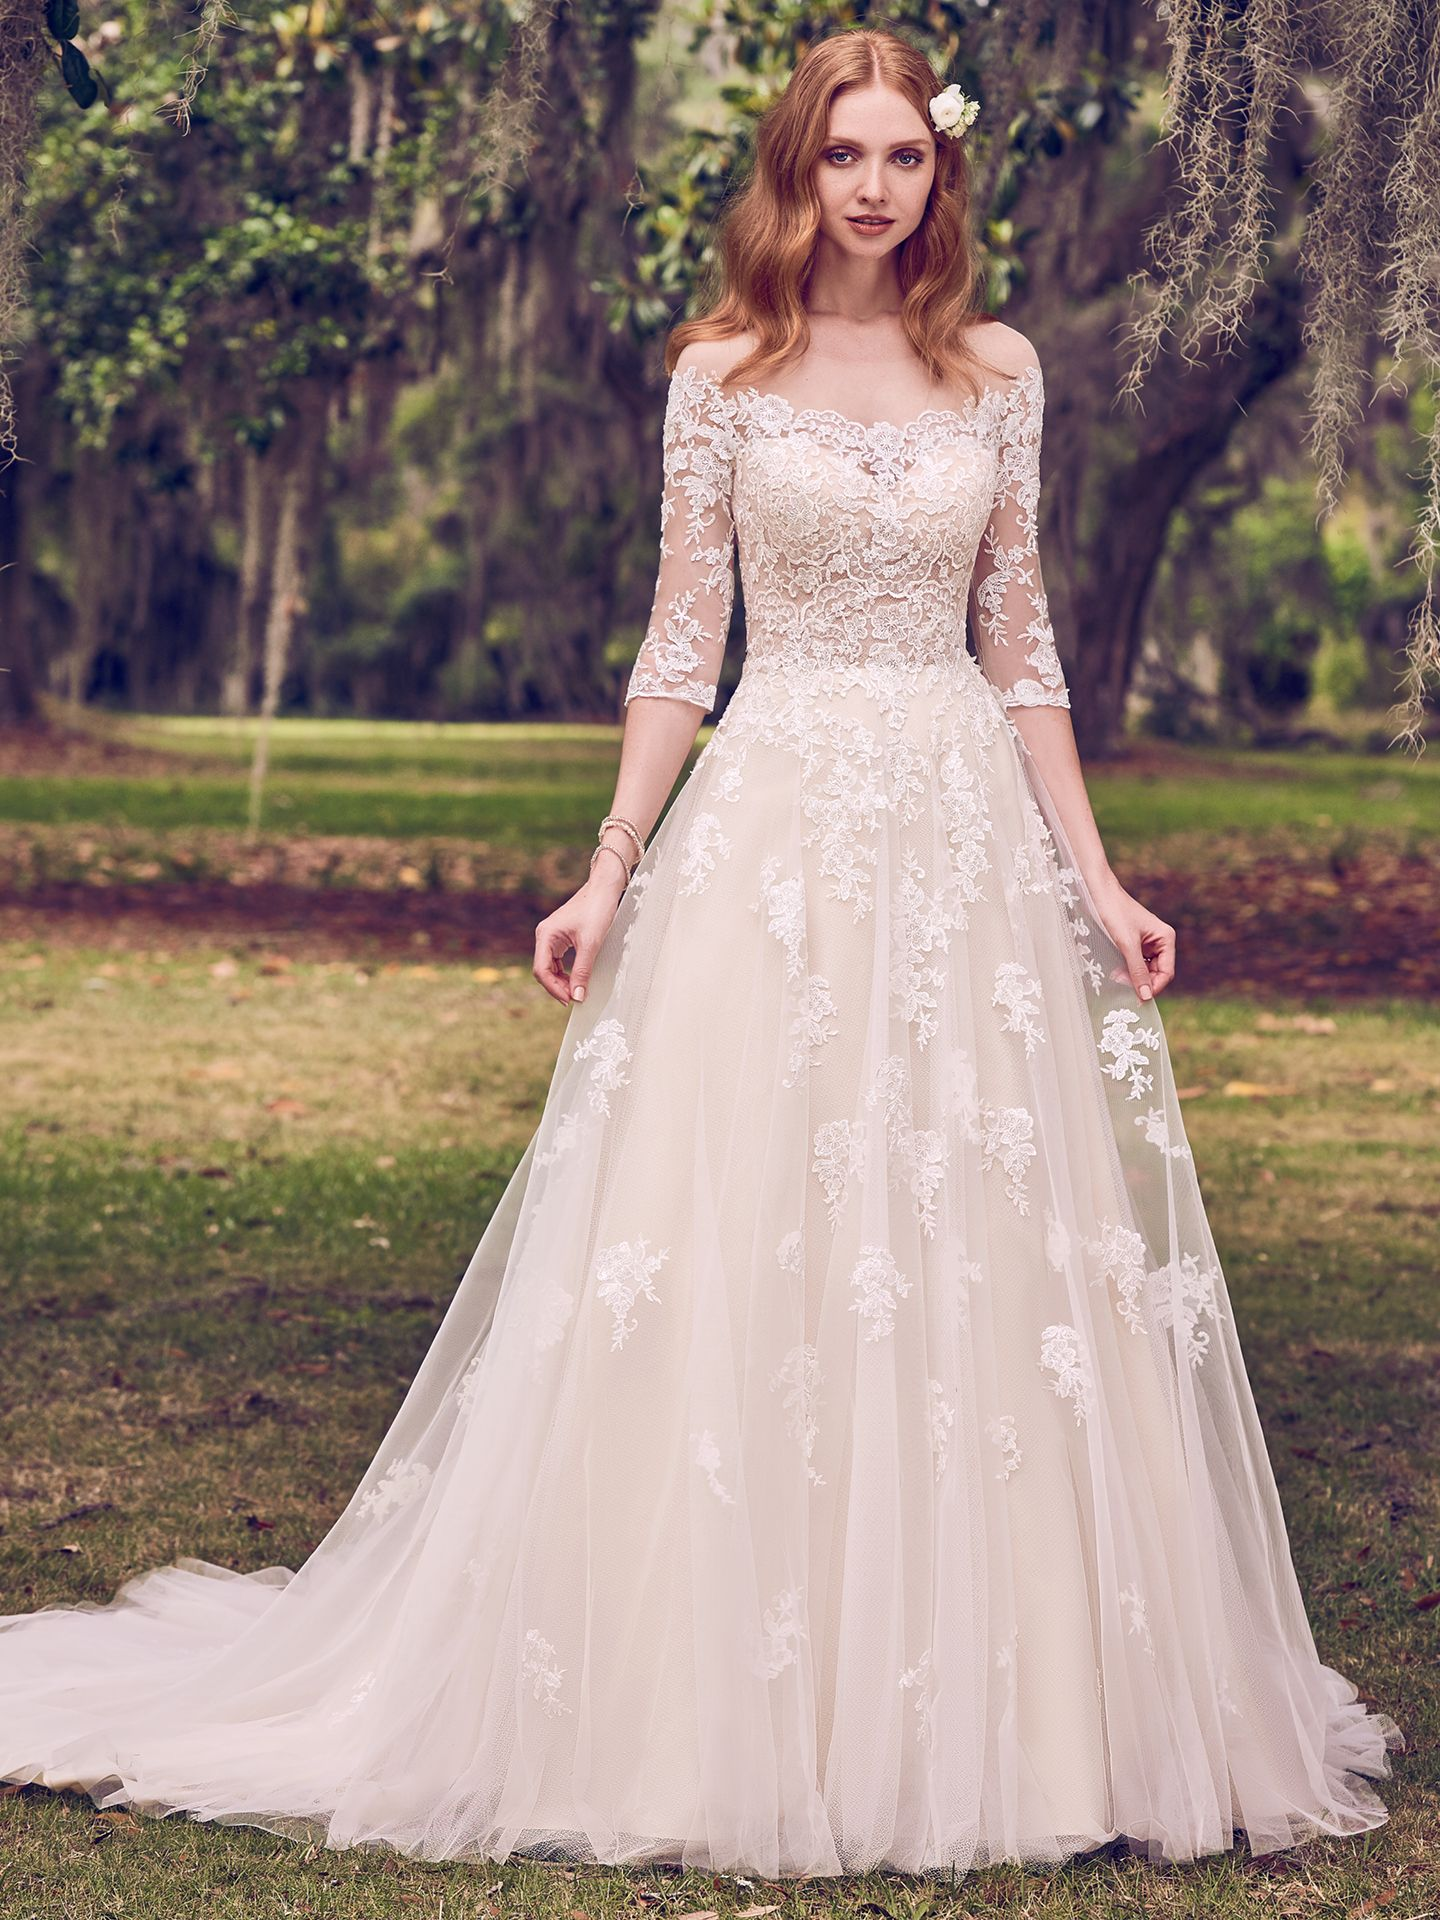 Favorite Sleeved Wedding dresses - Scalloped illusion off the shoulder neckline on subtly sexy wedding dress Bree by Maggie Sottero